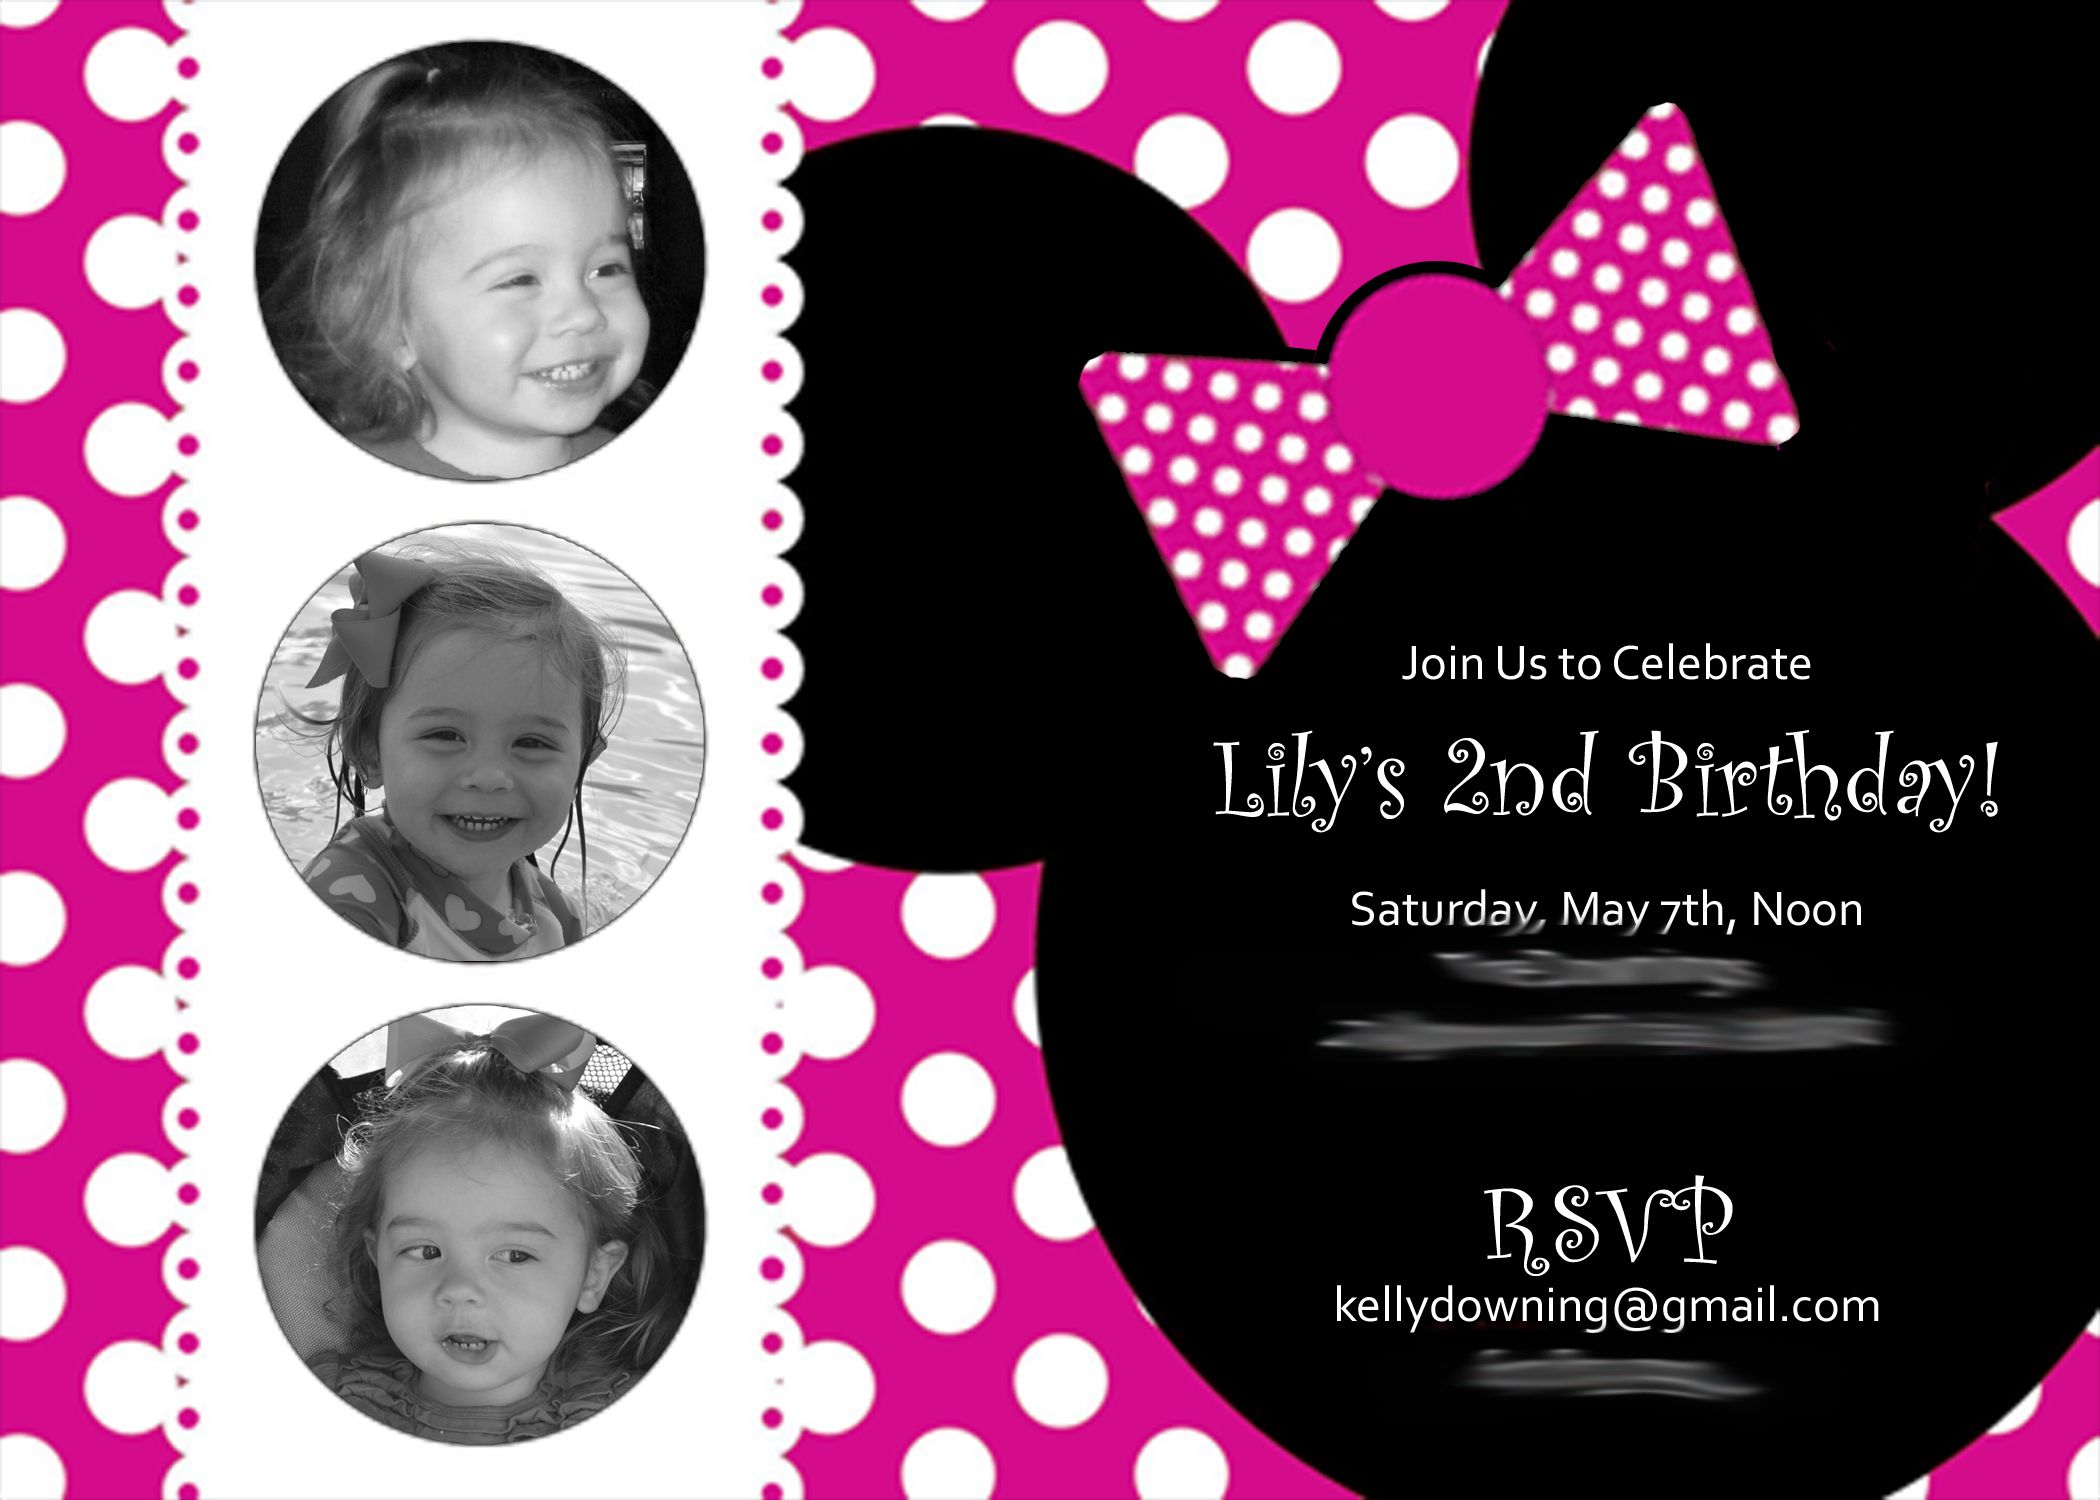 Birthday Invitations Online Templates Widescreen 2 Hd Wallpapers